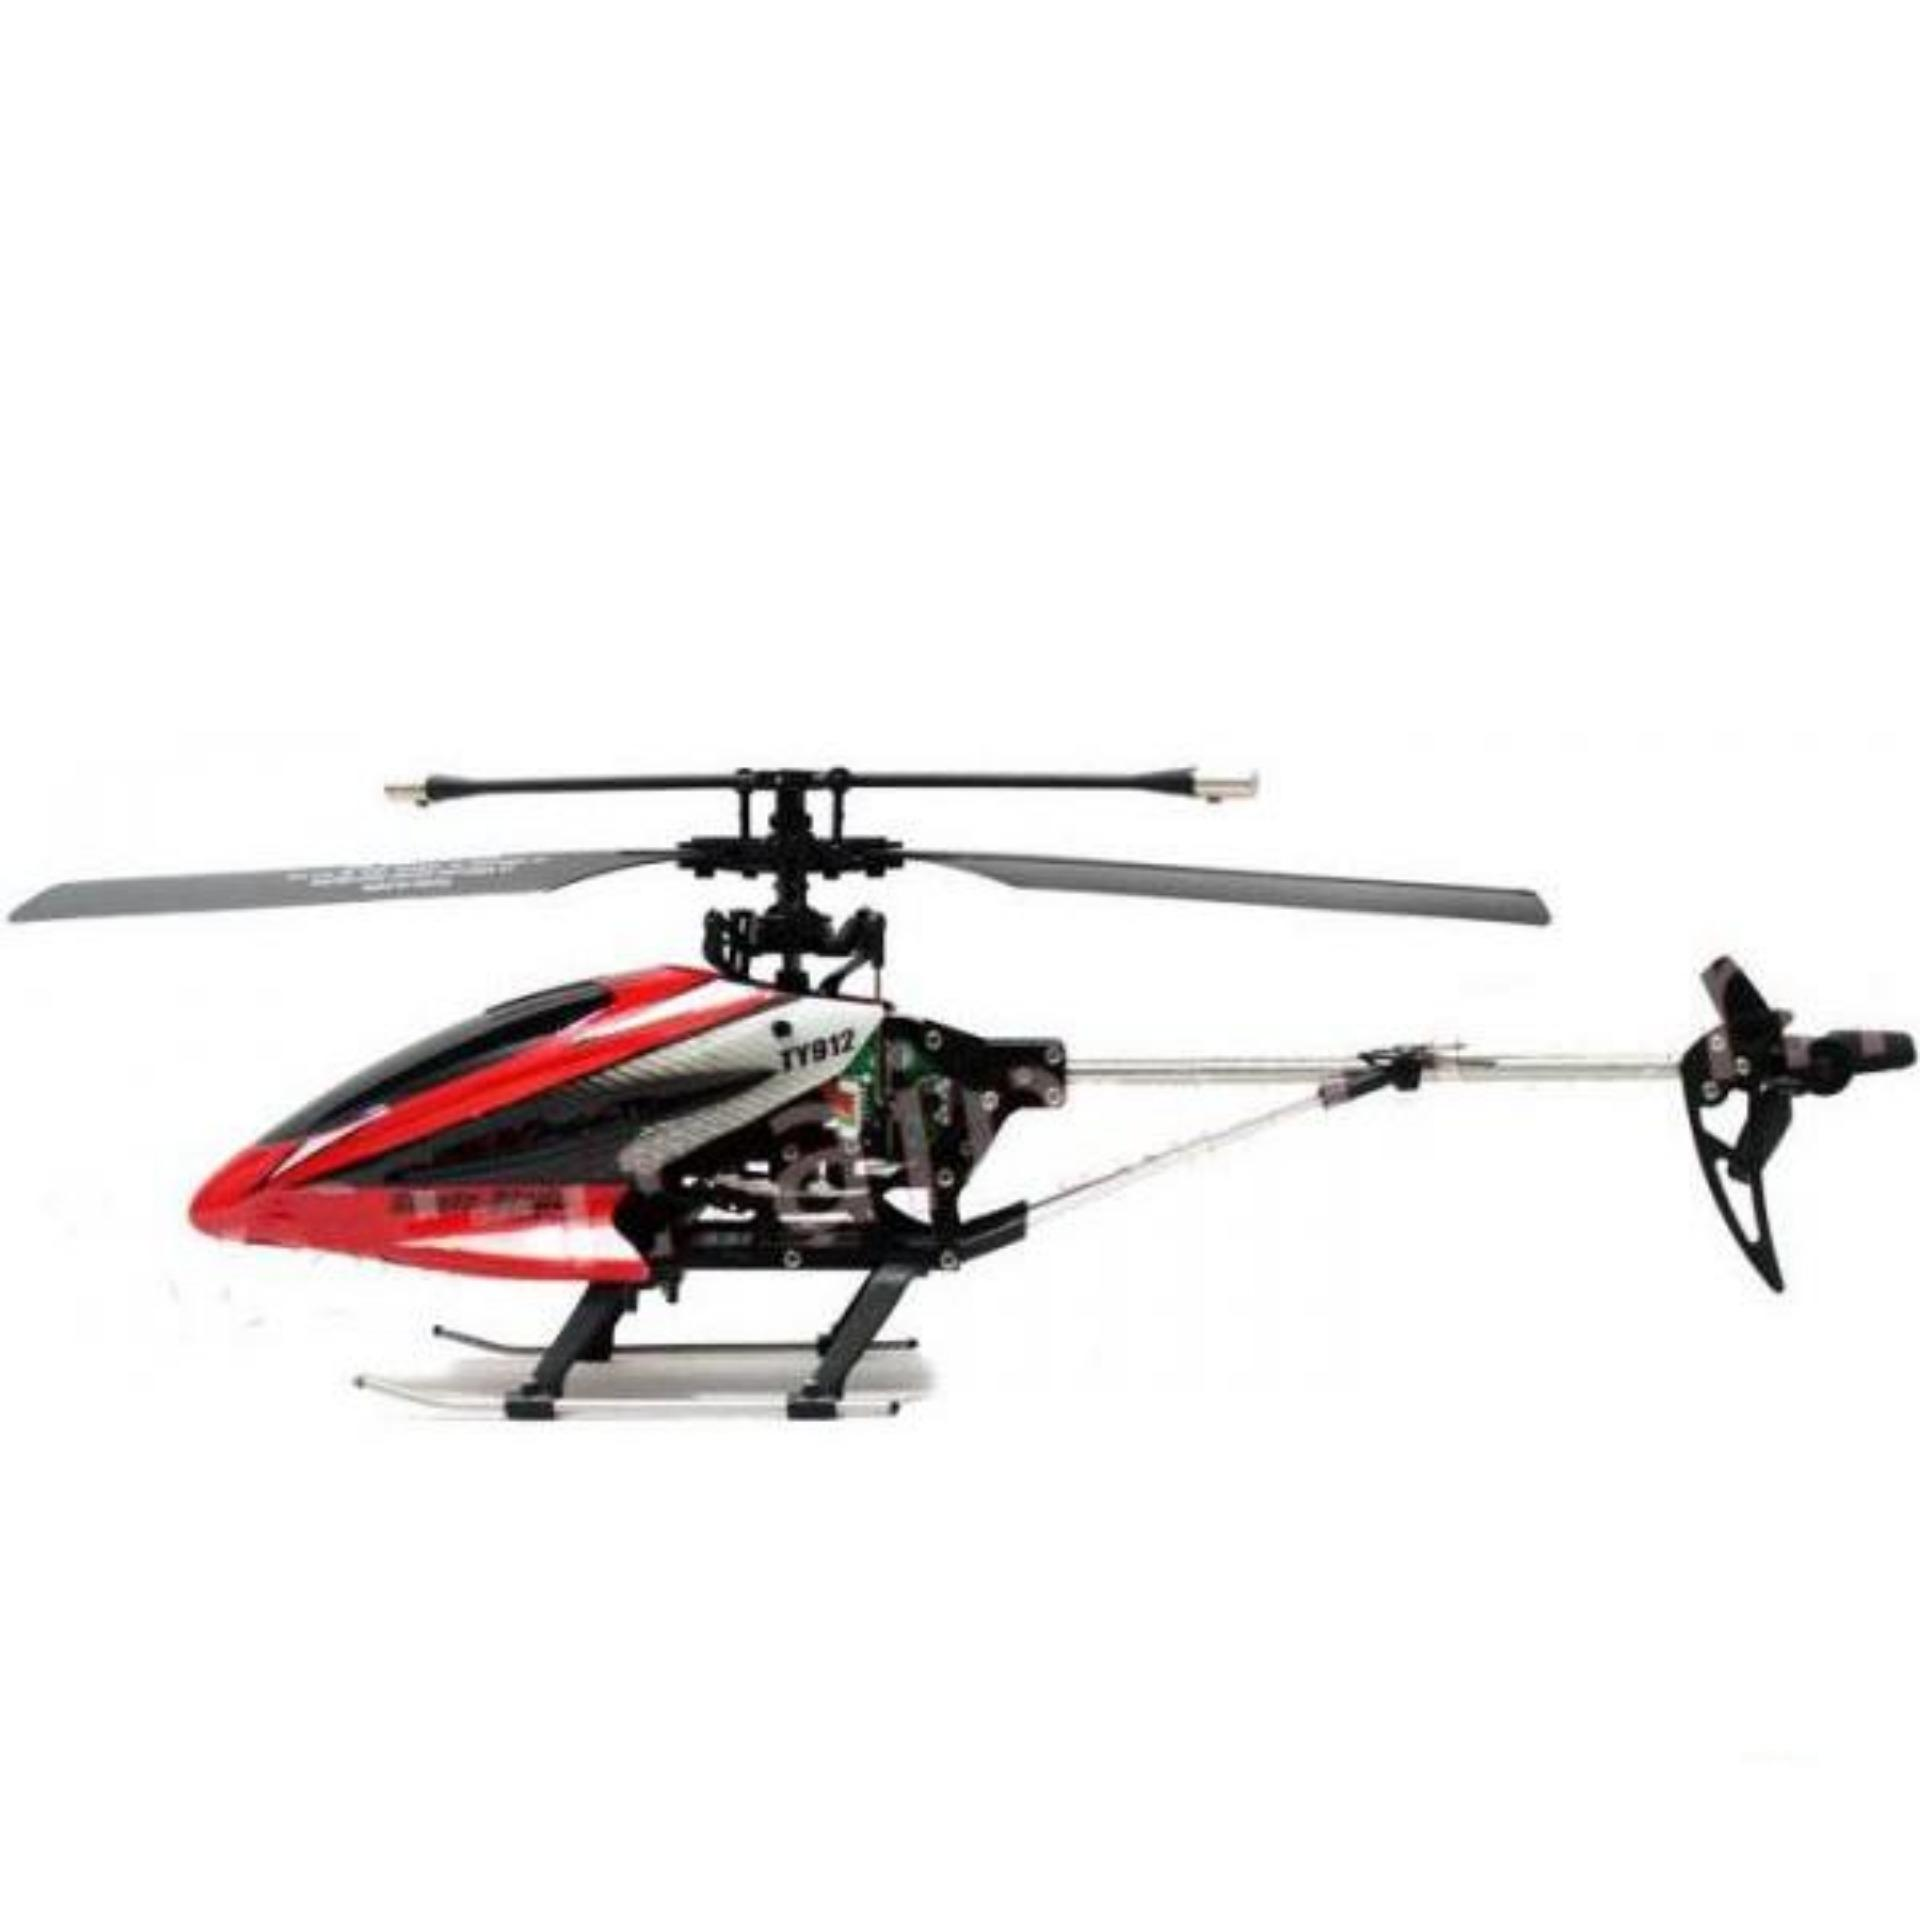 Terlaris HELIKOPTER remote controle helicopter, mainan remot control